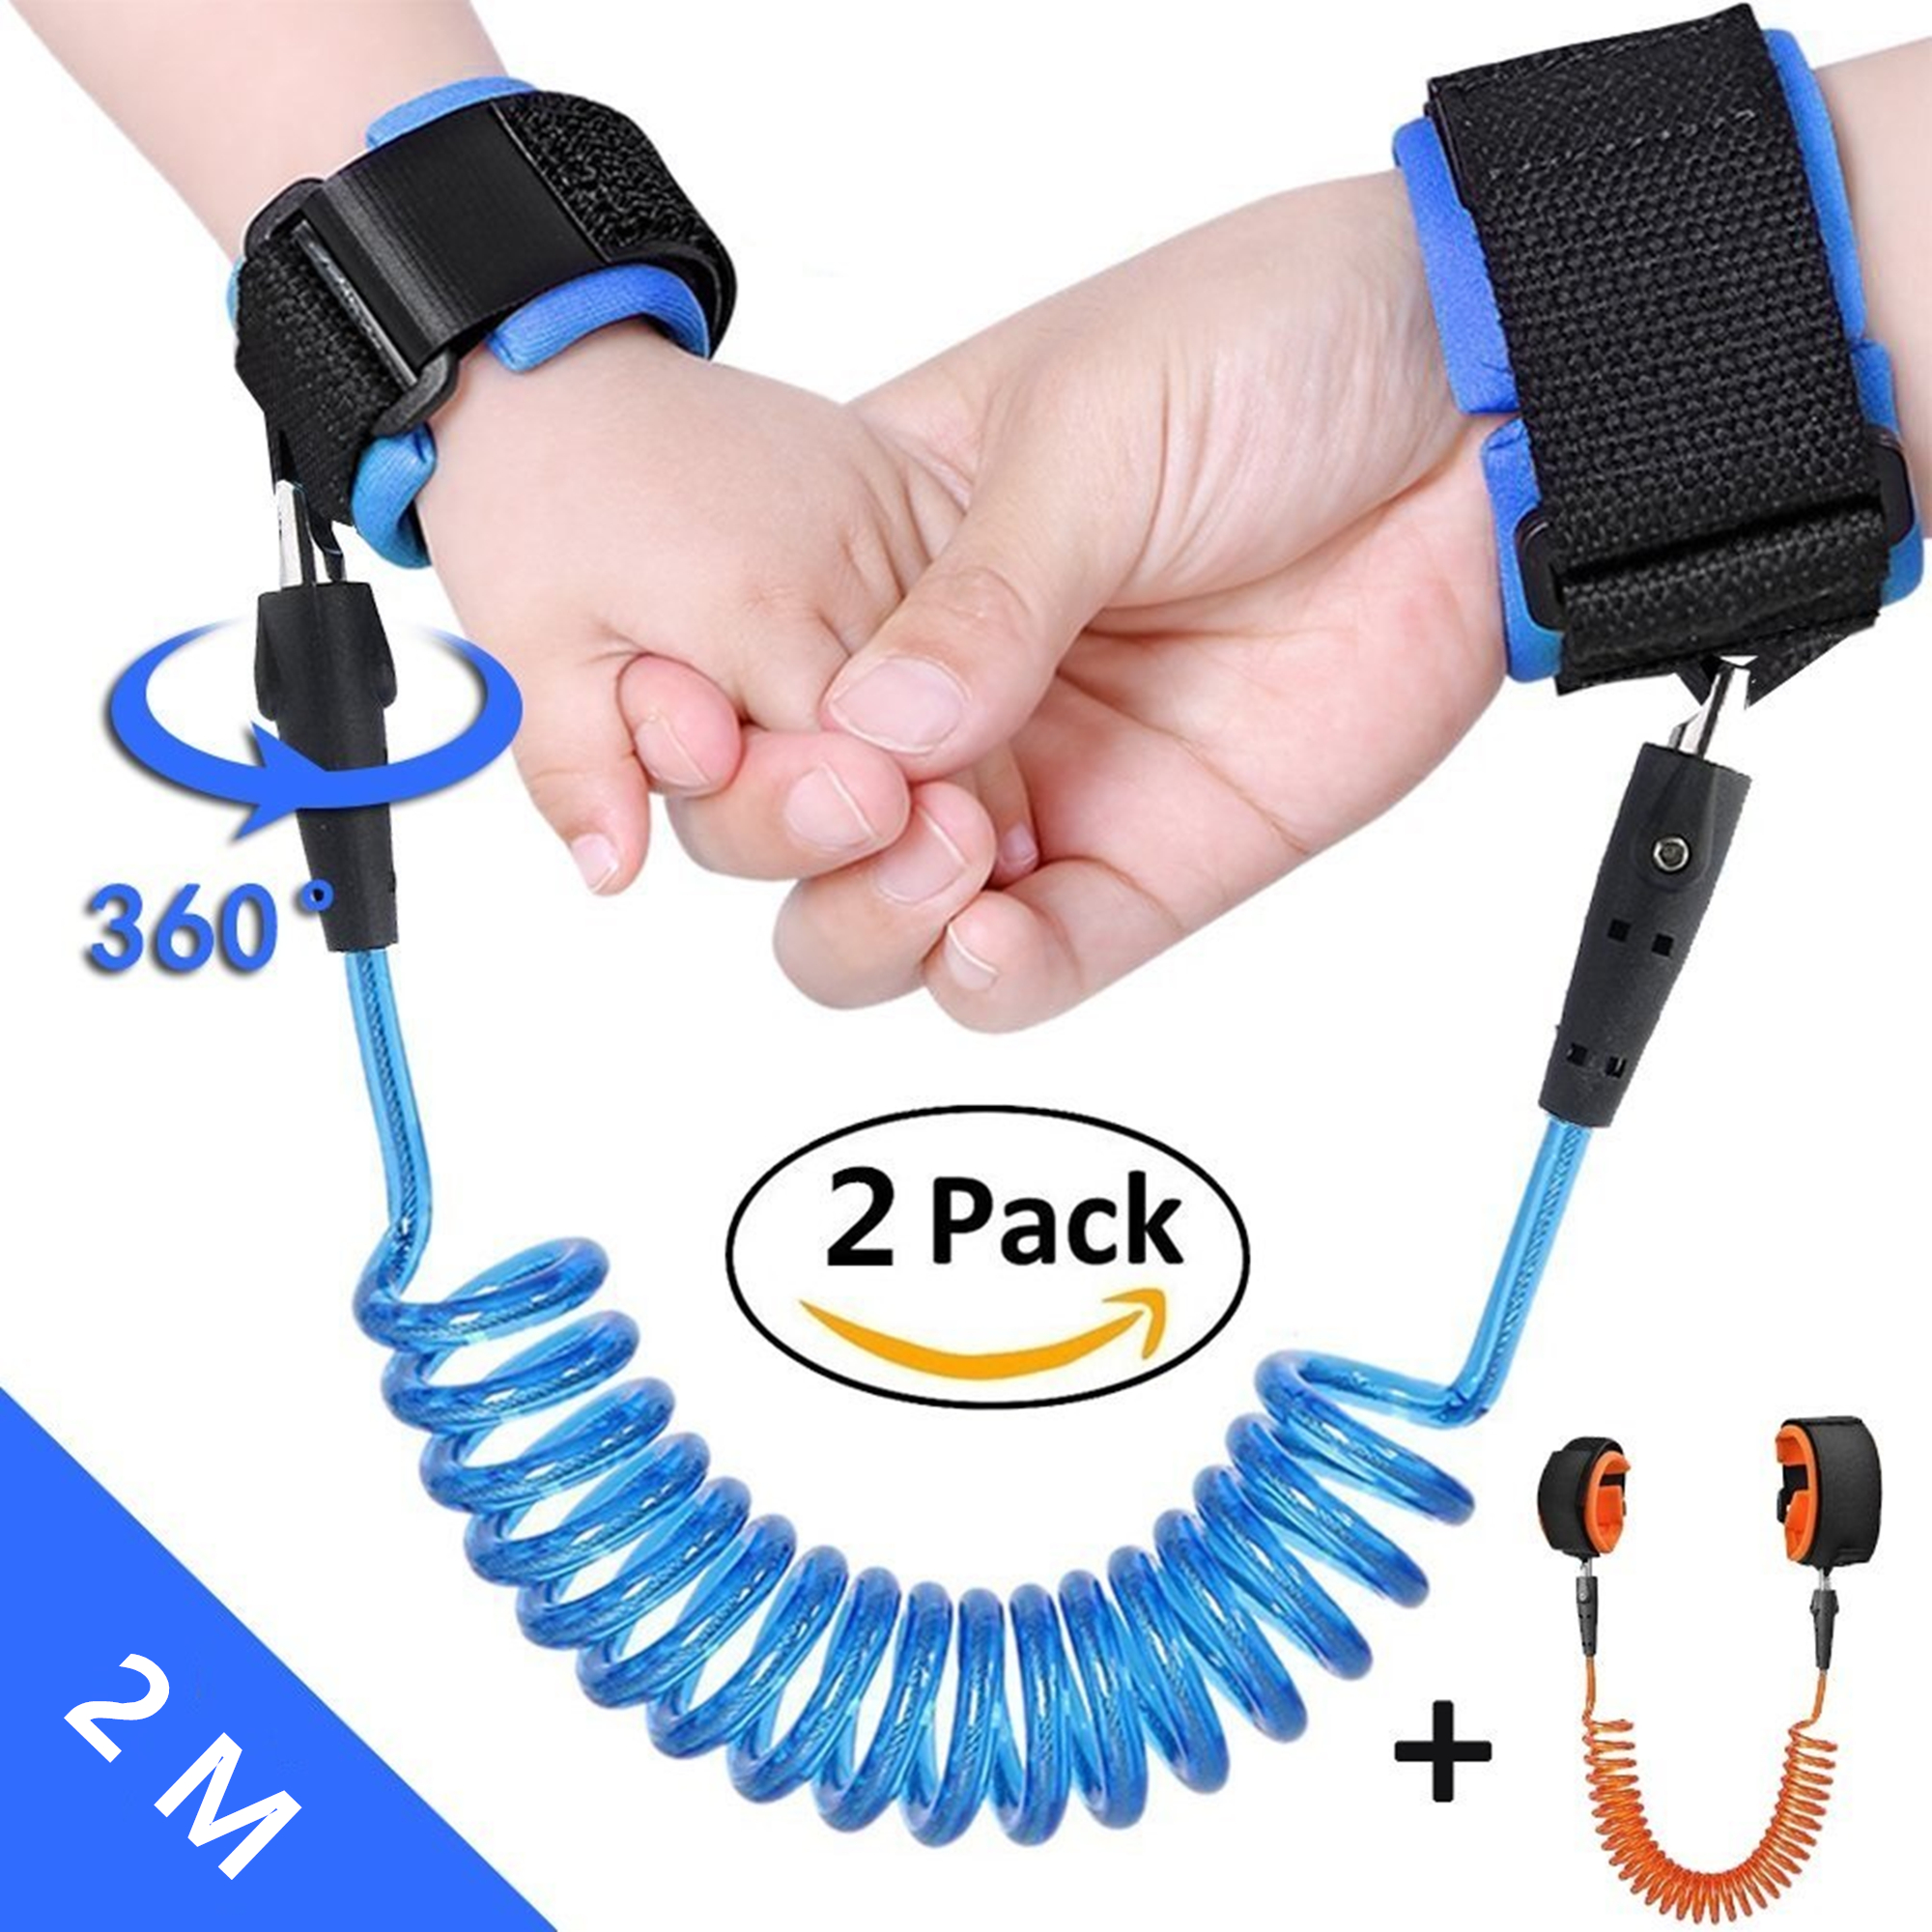 2 Pack Moretek Child Anti Lost Safety Harness Link, Adjustable Skin Friendly Anti Lost Belt Wrist Safe Link Wrist Straps for Babies Kids Toddlers Runners(2.0m, Blue+Orange)